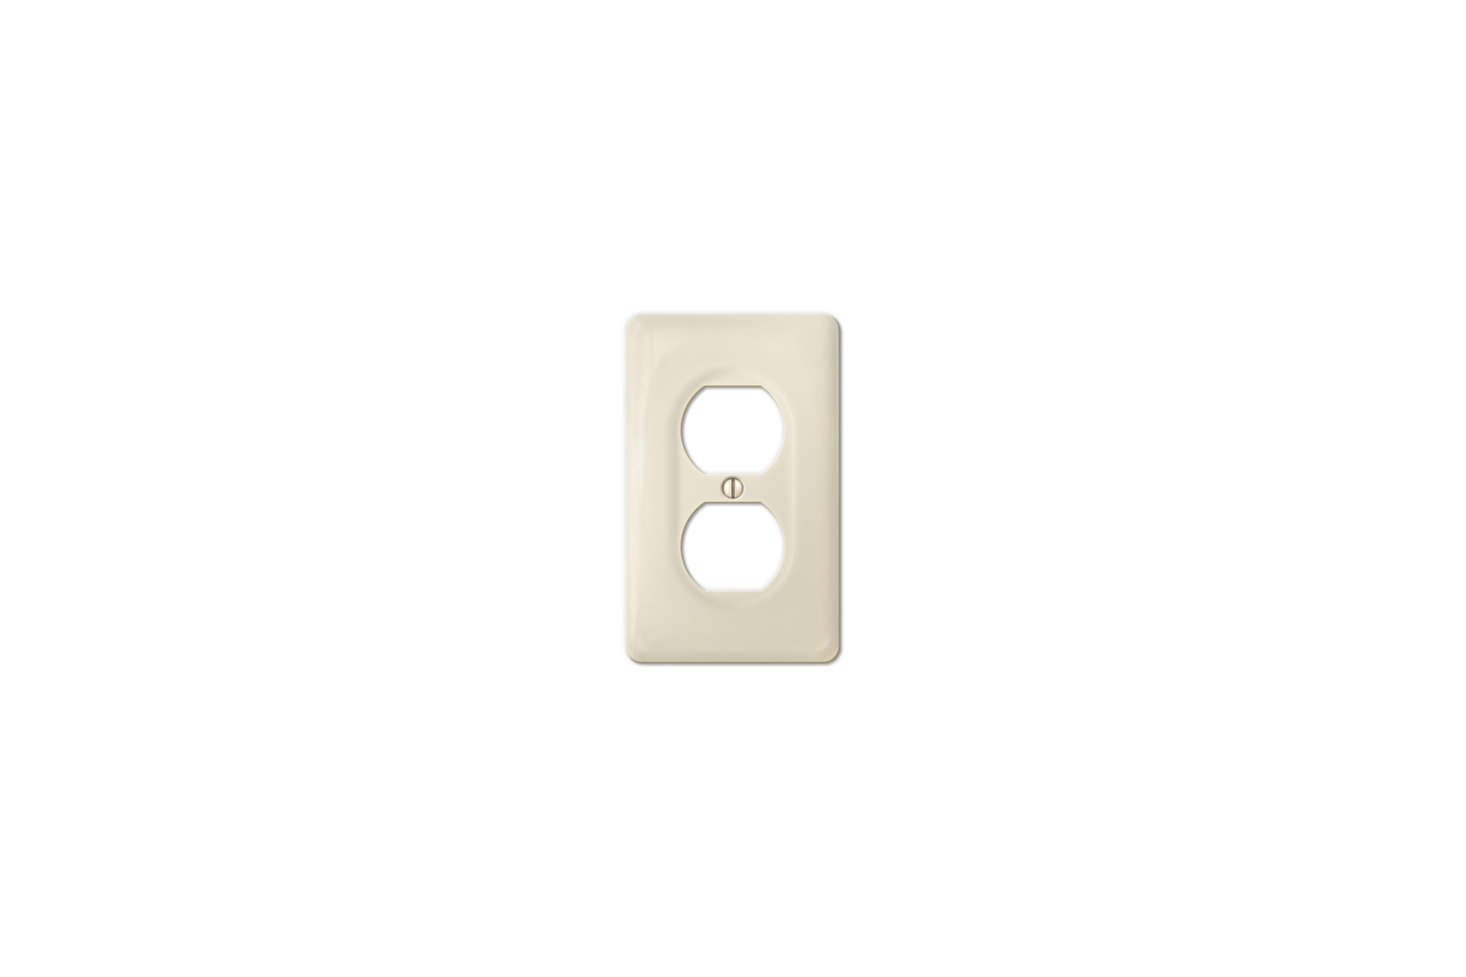 The Amerelle (3020DBT) Allena Biscuit Ceramic Duplex Wallplate is $5.49 at Wall Plate Warehouse.